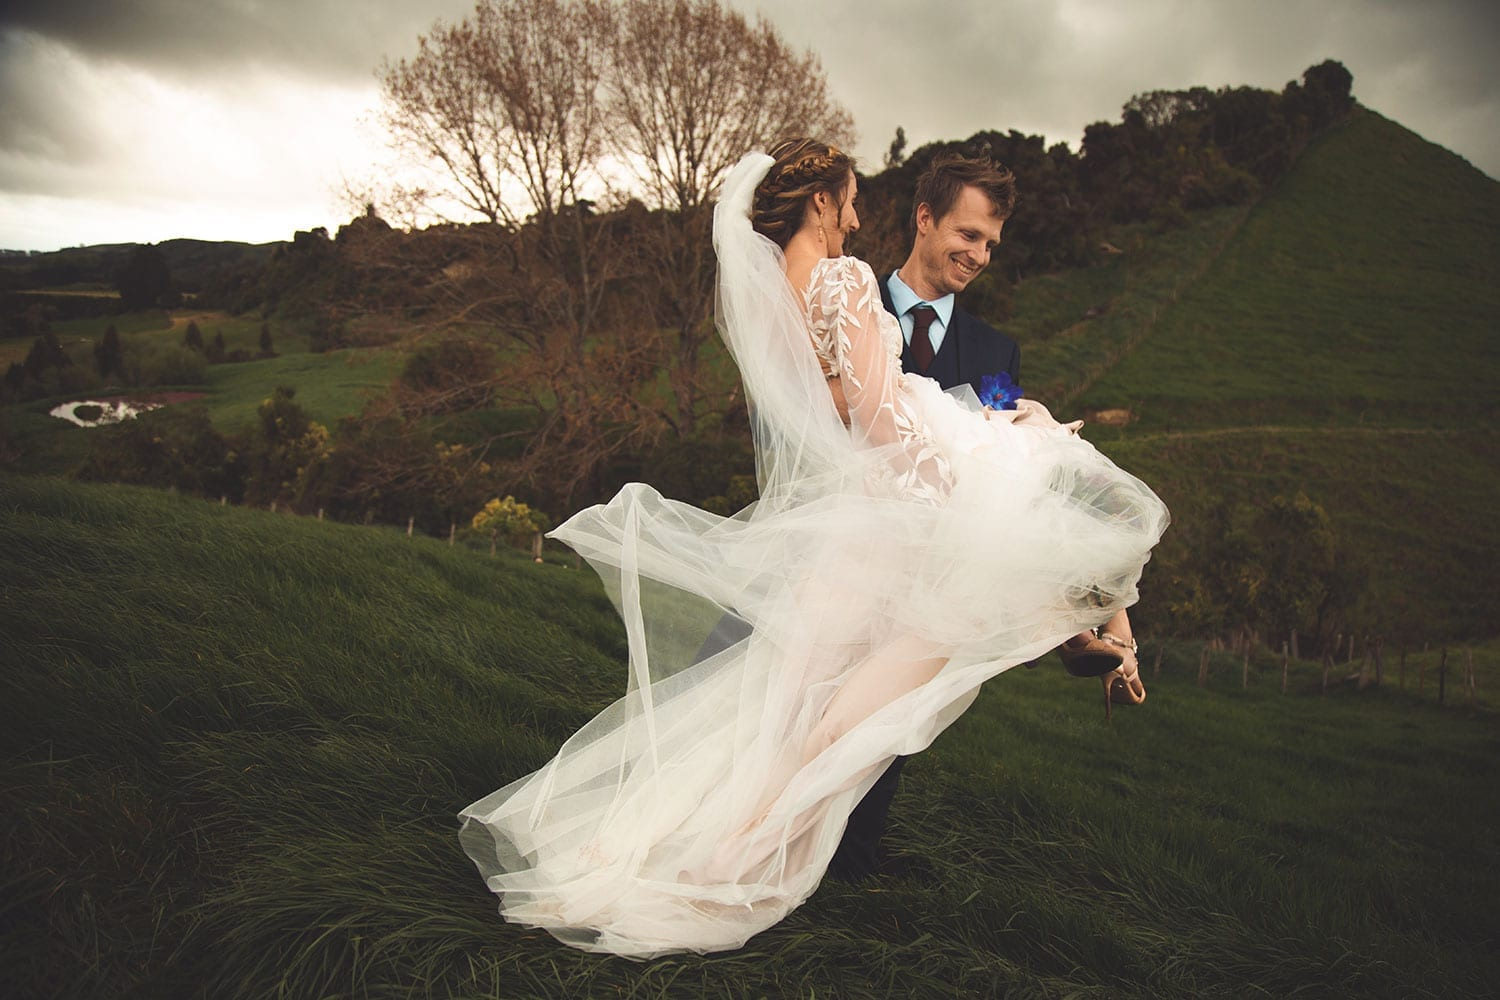 Vinka Design Features Real Weddings - bride in custom made gown, a combination of Isabelle and Ivy from our Heart of Havana collection. Groom carries bride